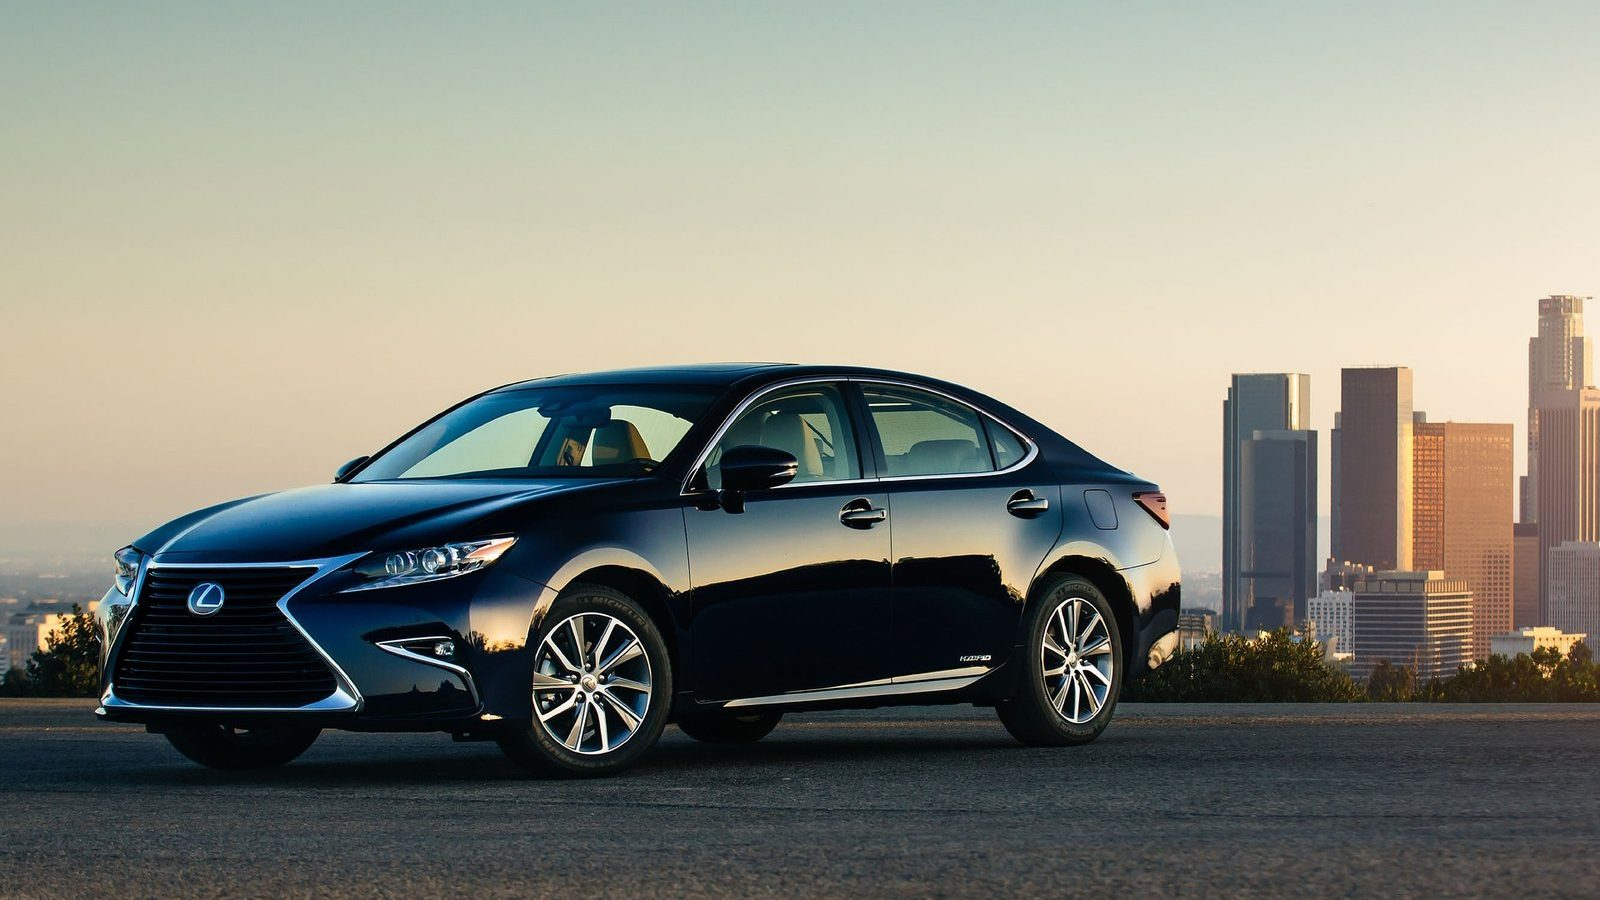 An image of a Lexus ES outdoors, one of Consumer Reports' best used hybrid cars.